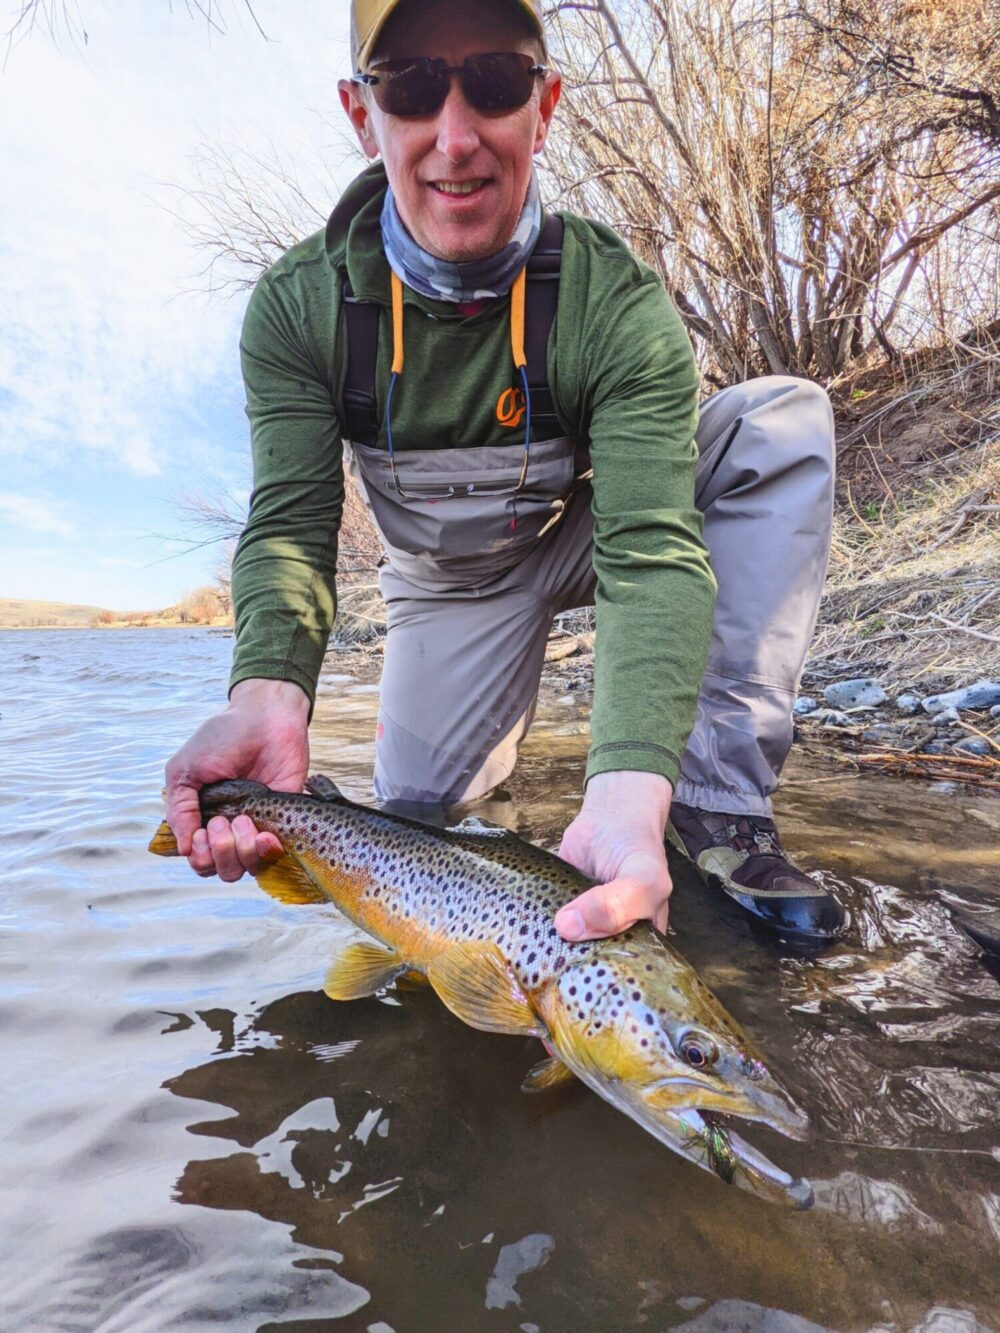 Angler with a Missouri River Brown trout in April